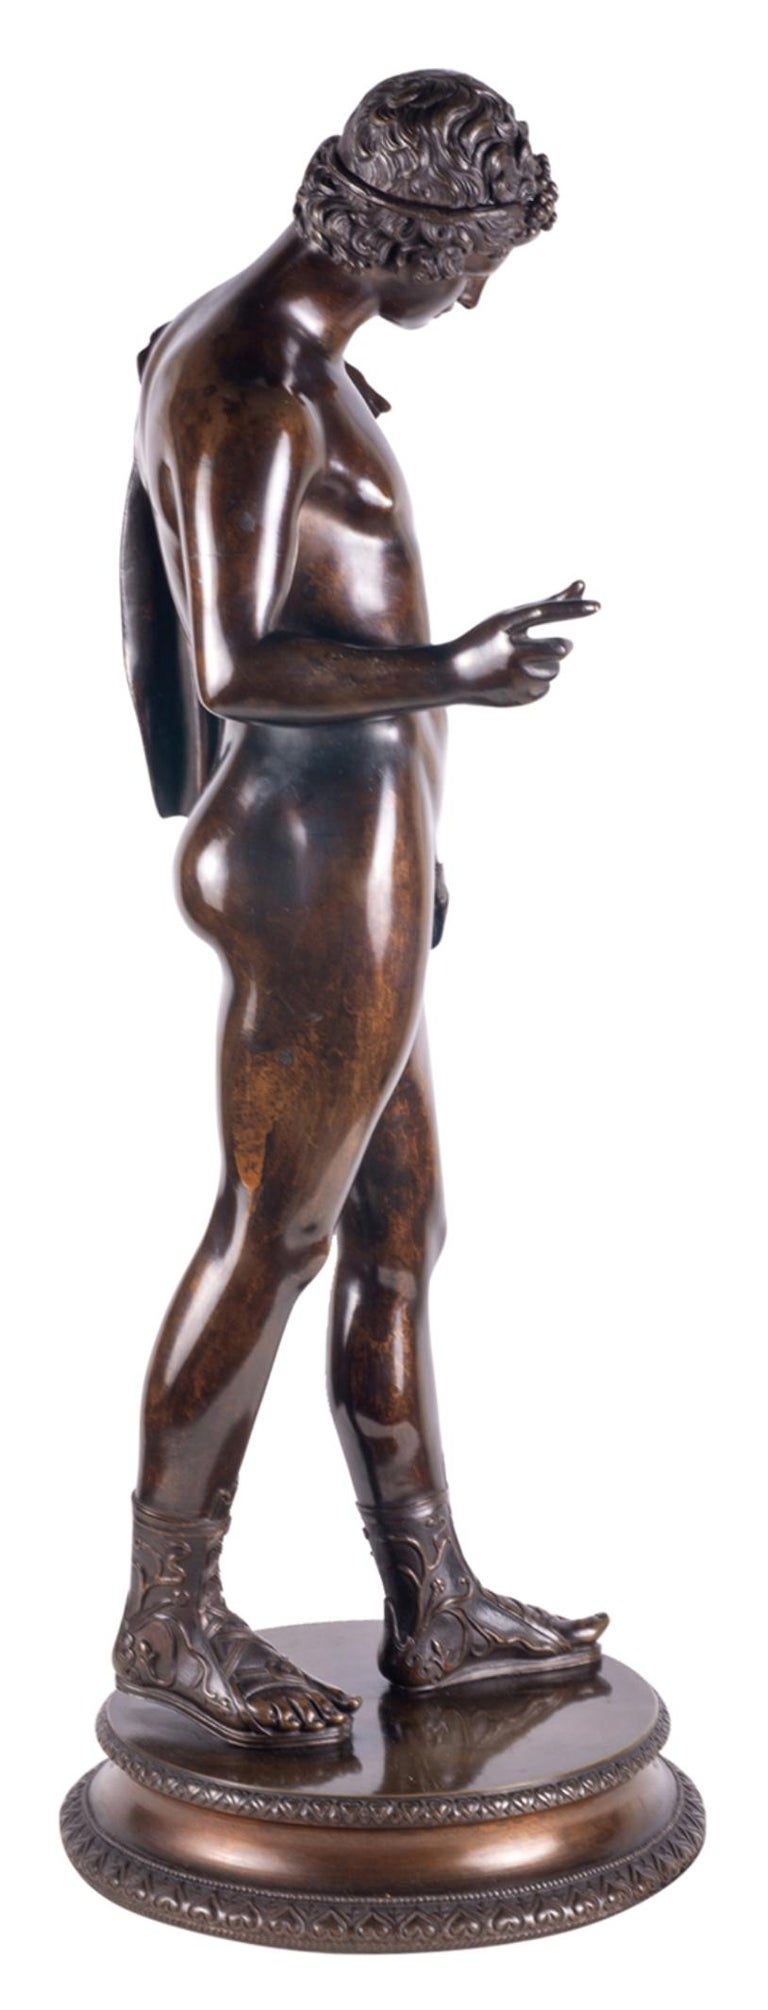 A very good quality Grand Tour patinated bronze figure of Narcissus, dating from the last quarter of the 19th century.  Narcissus was a hunter in Greek mythology and he was distinguished for his beauty.  This well patinated bronze classical